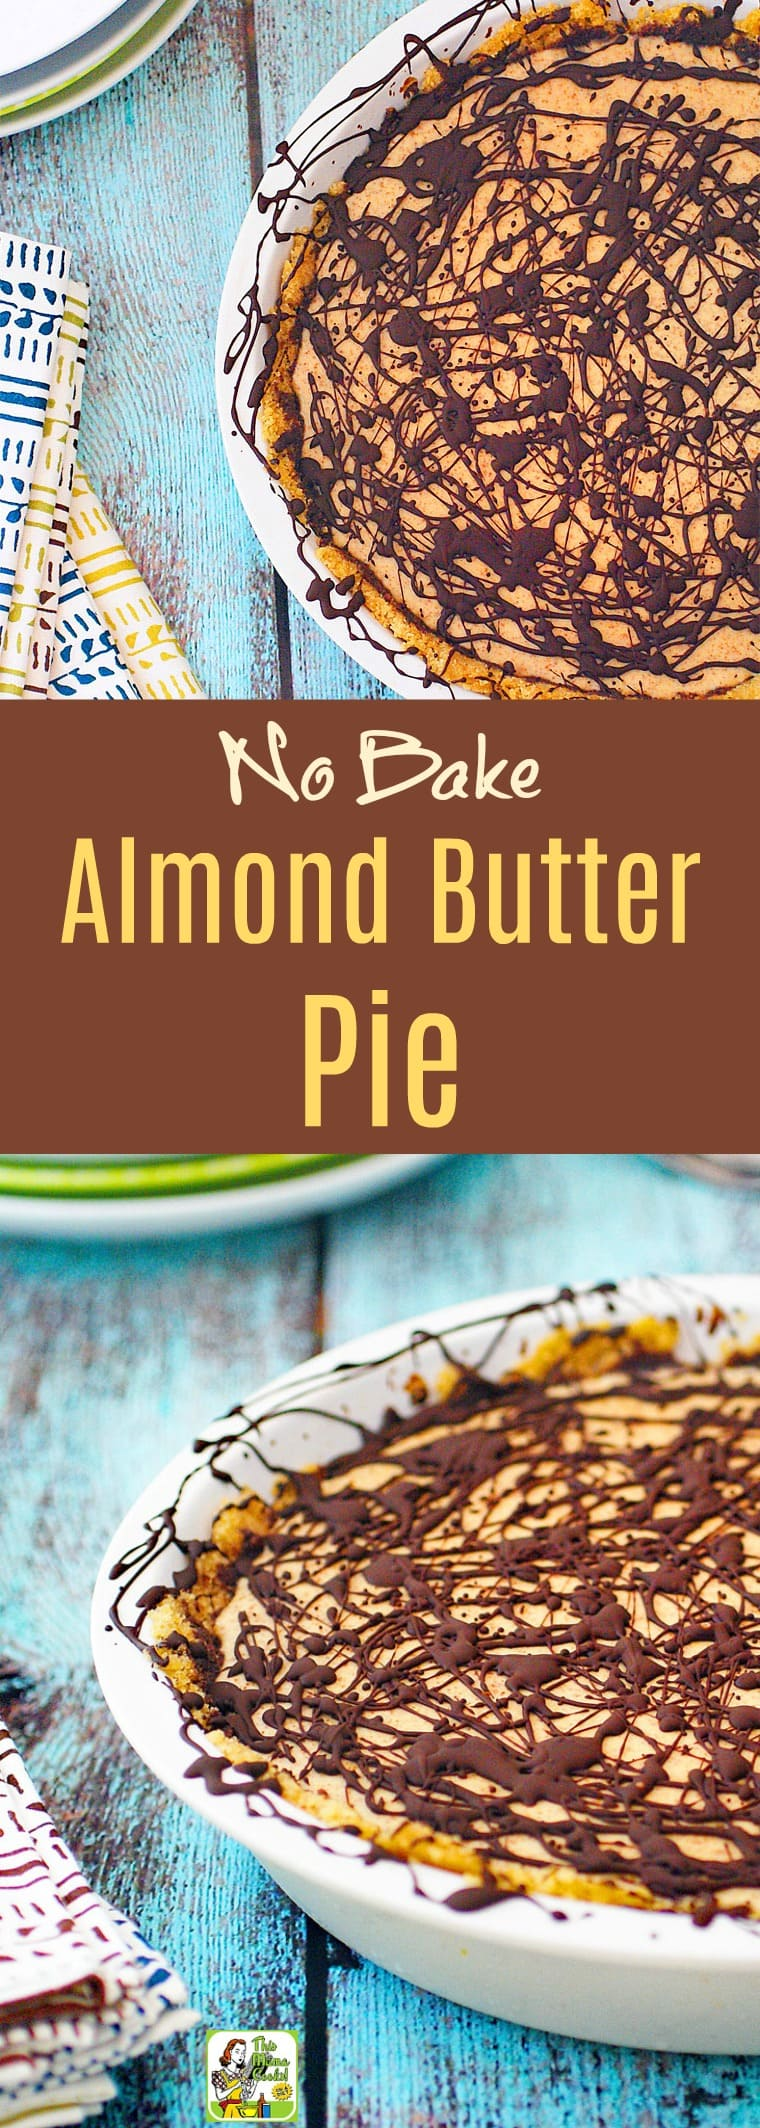 Looking for an easy no bake pie with an easy no bake pie crust? Click to get this No Bake Almond Butter Pie recipe with a chocolate drizzle. It's dairy-free, gluten free and comes with a simple vegan option. You'll love how easy this pie is to make!